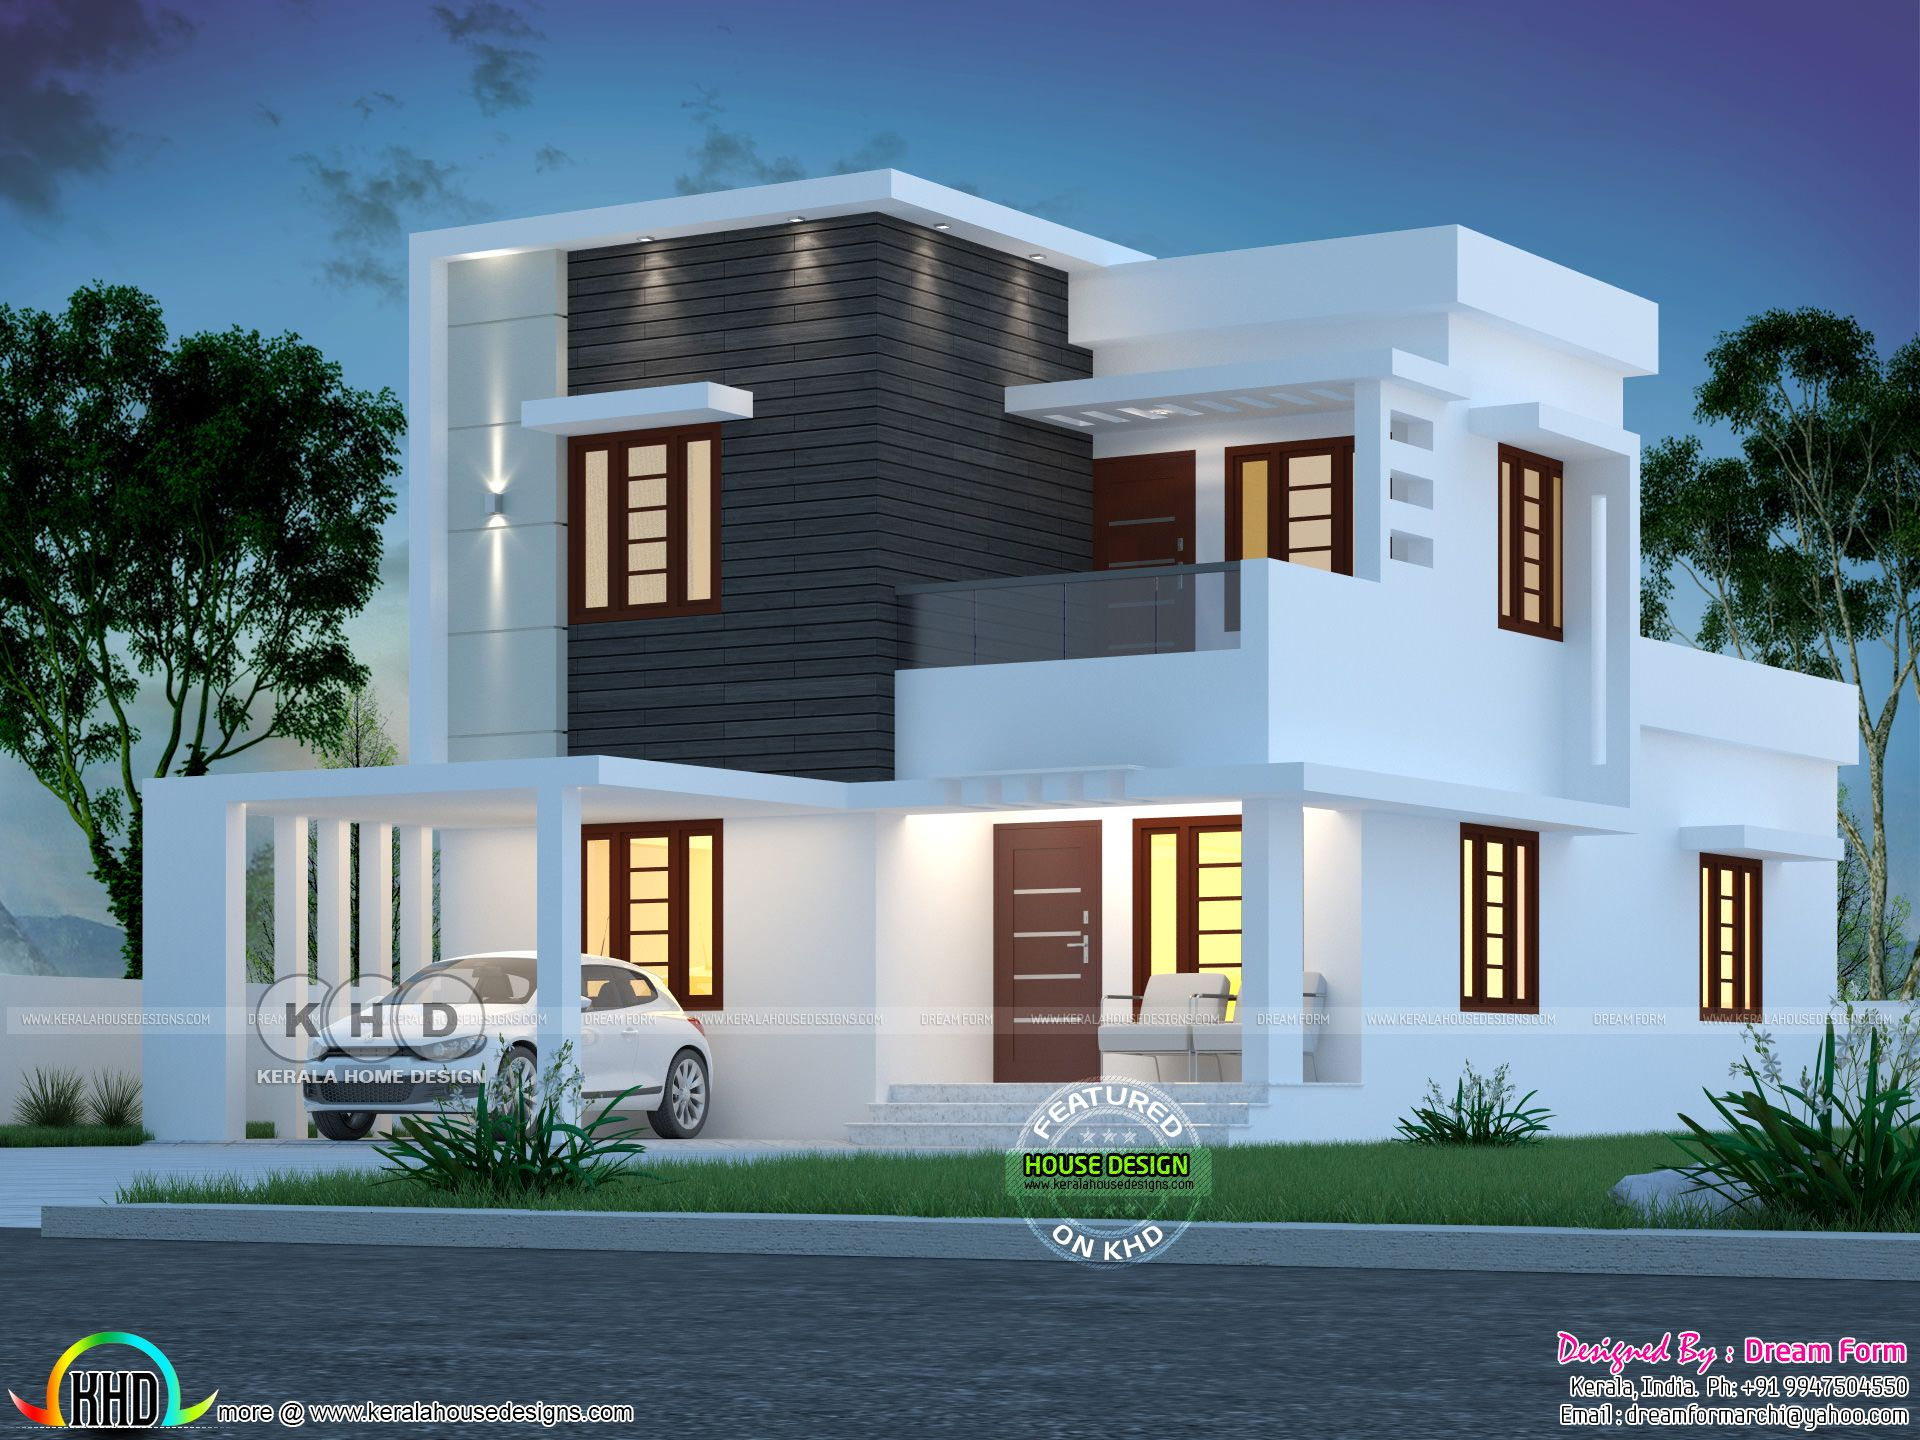 4 Bedroom 1670 Sq Ft Modern Home Design In 2020 Modern Bungalow